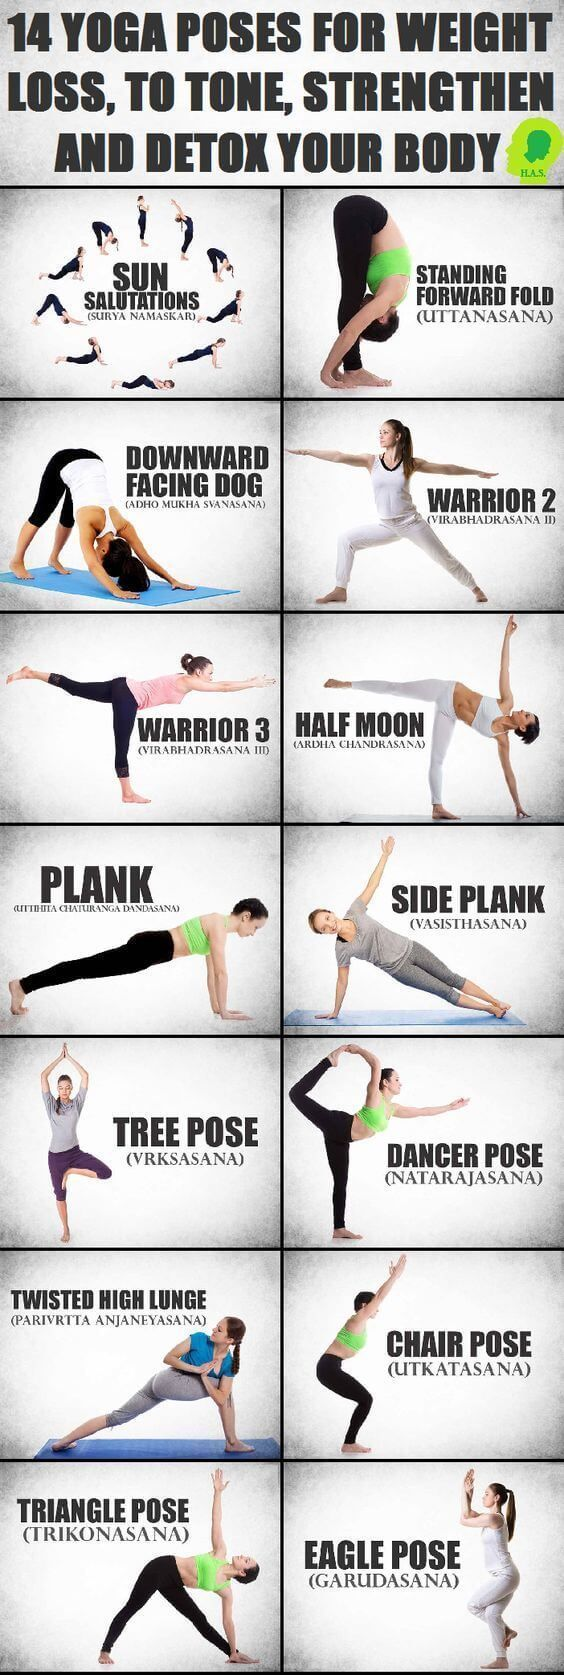 14 Yoga Poses for Weight Loss, To Tone, Strengthen and Detox Your Body -> zum o